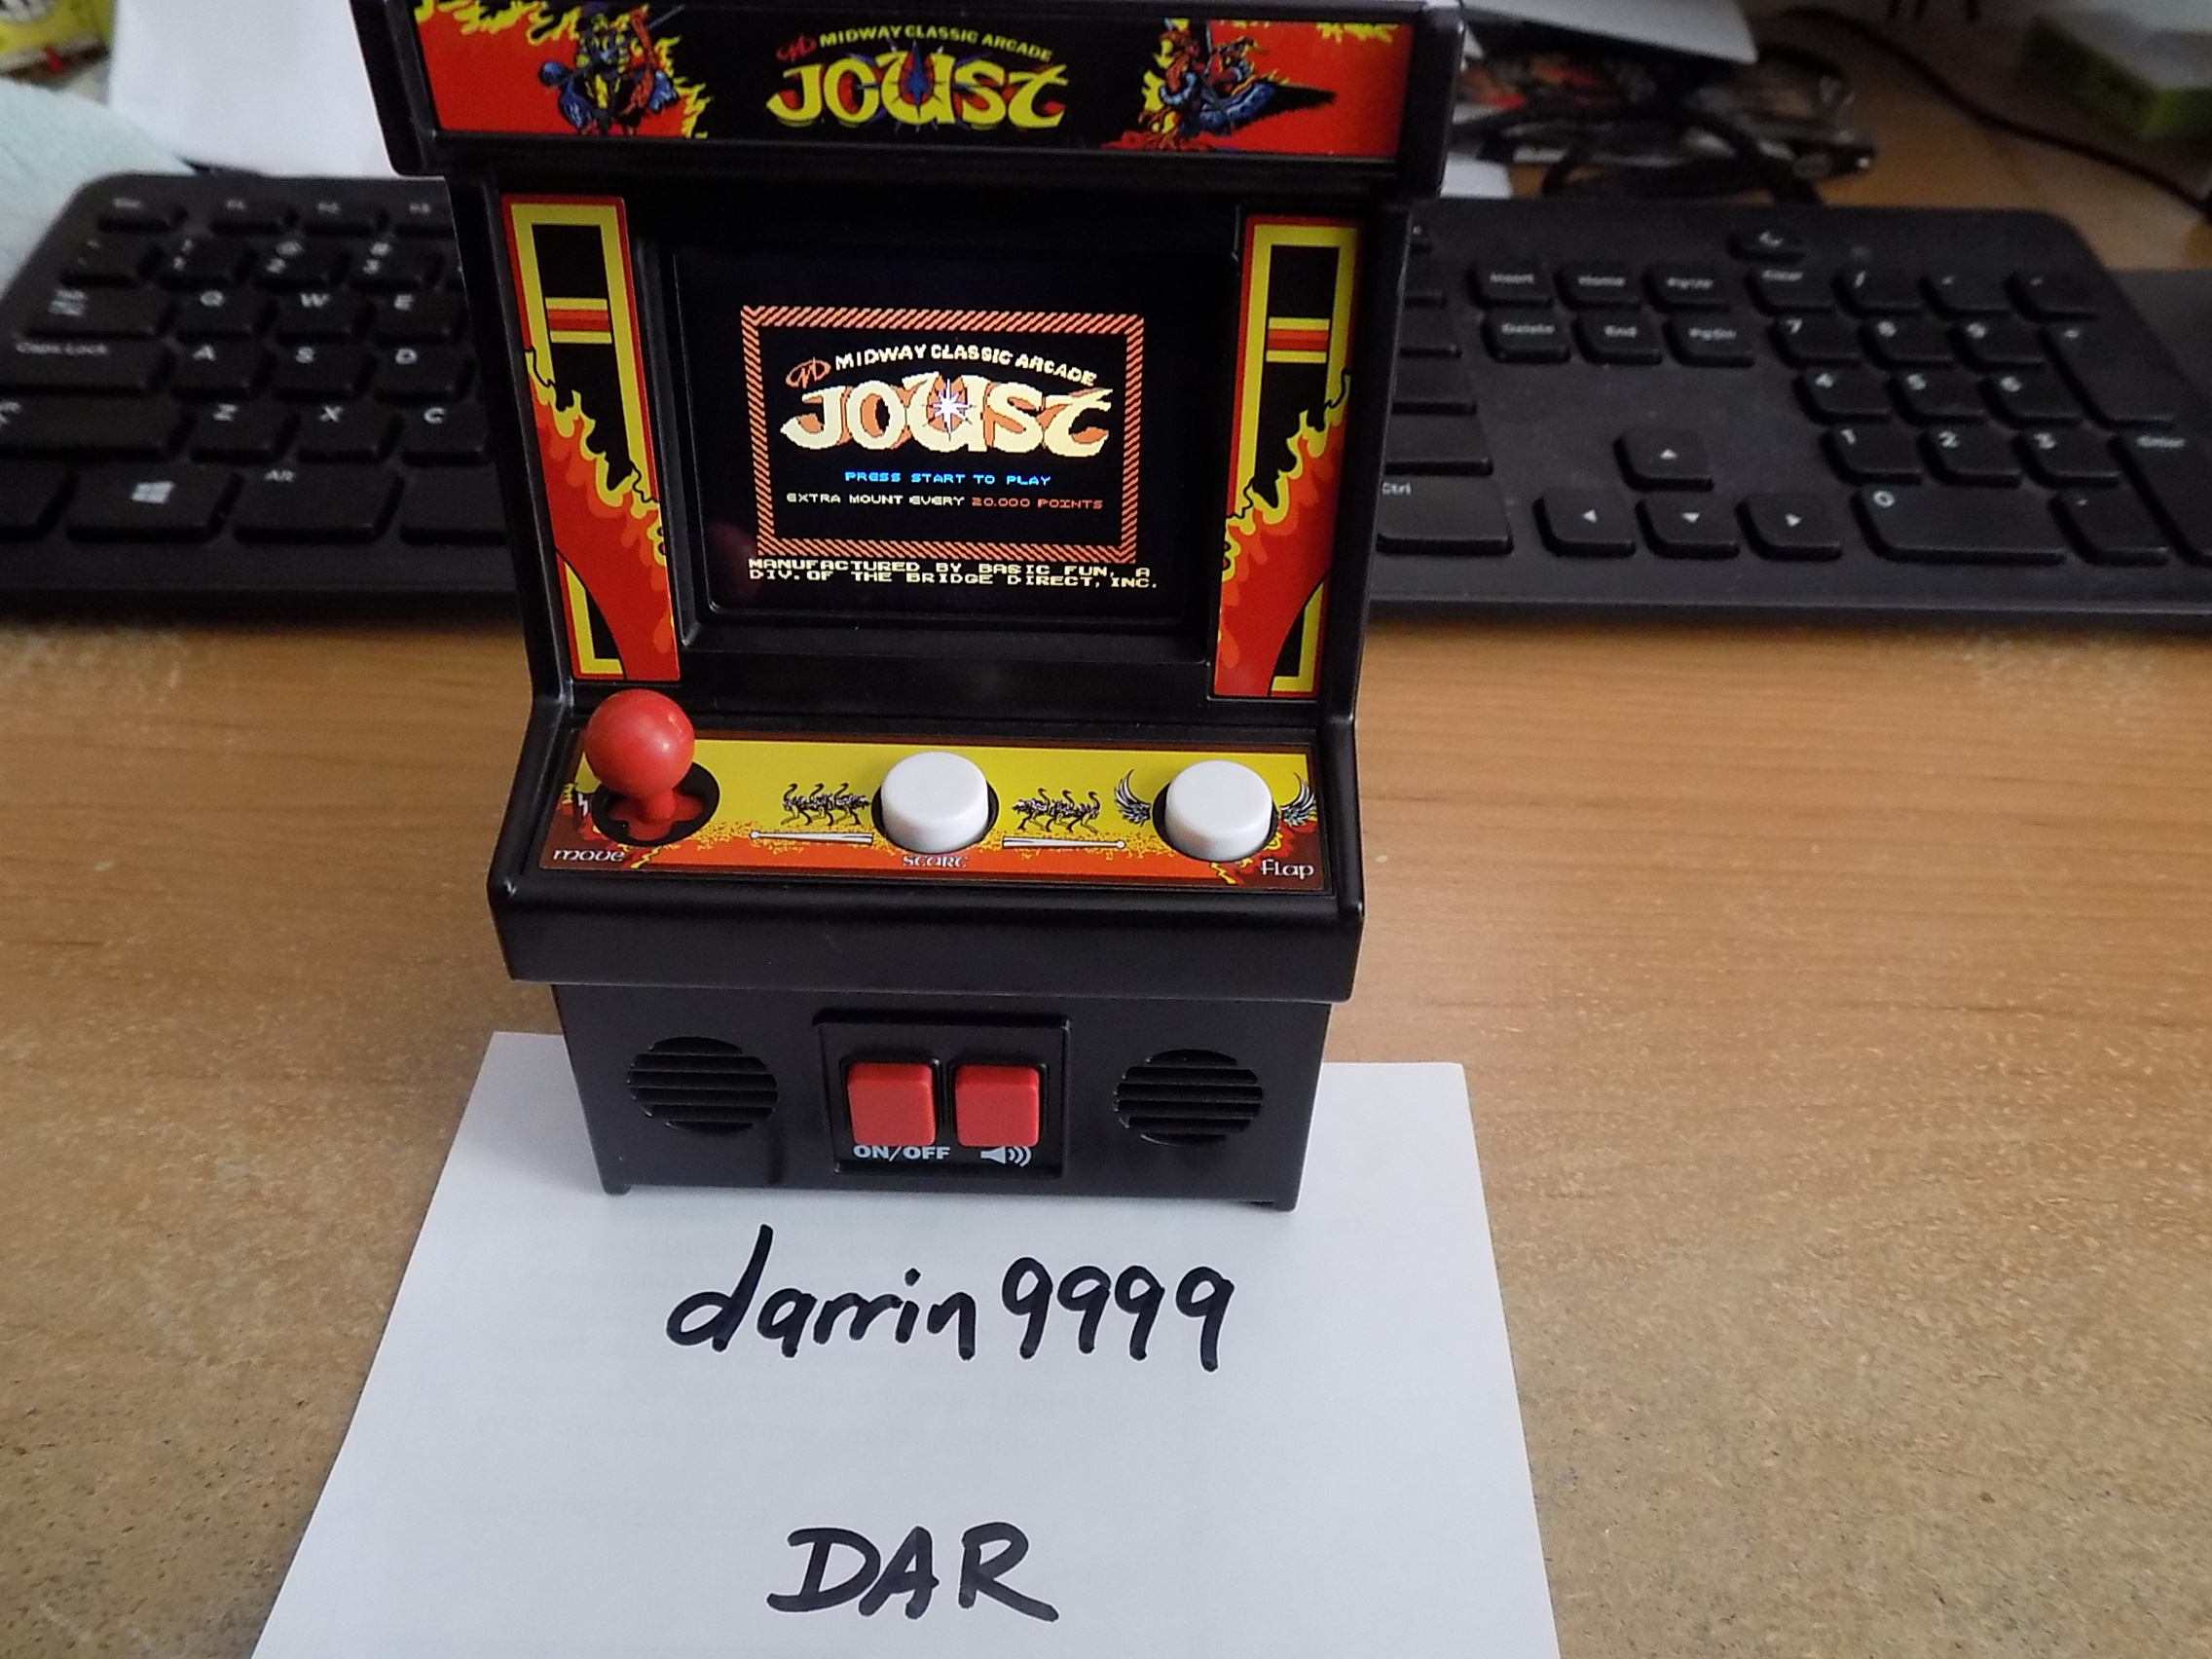 darrin9999: Arcade Classics 08: Joust (Dedicated Handheld) 8,250 points on 2018-03-21 17:21:36